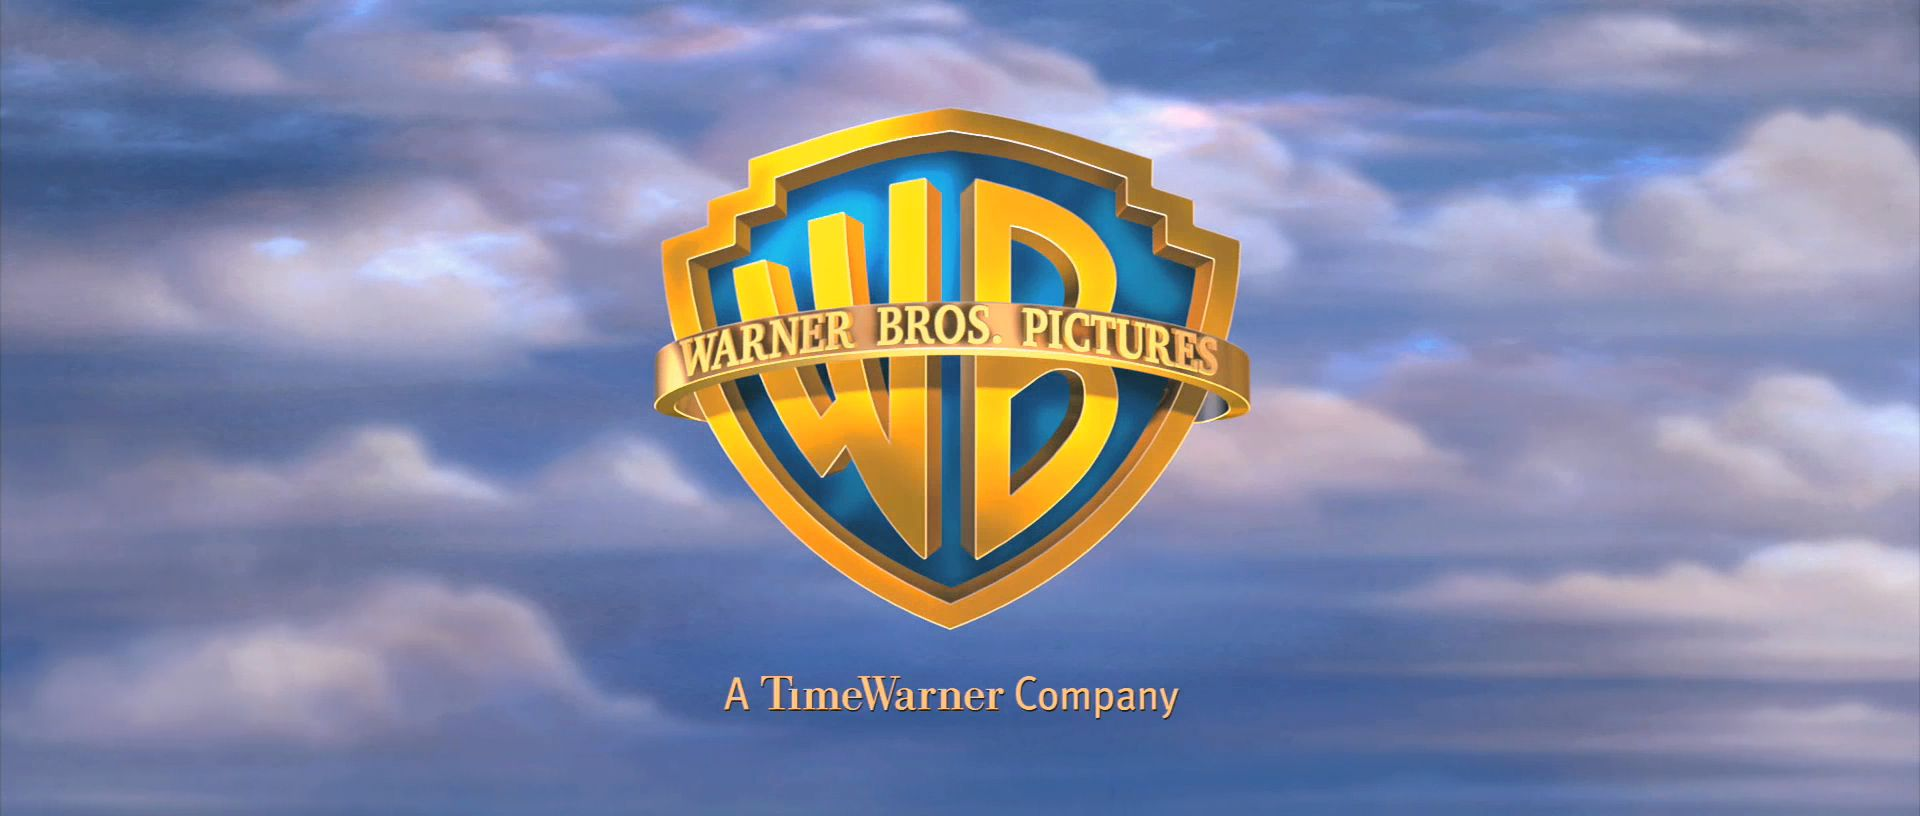 Warner Bros Entertainment Inc Is An American Producer Of Film